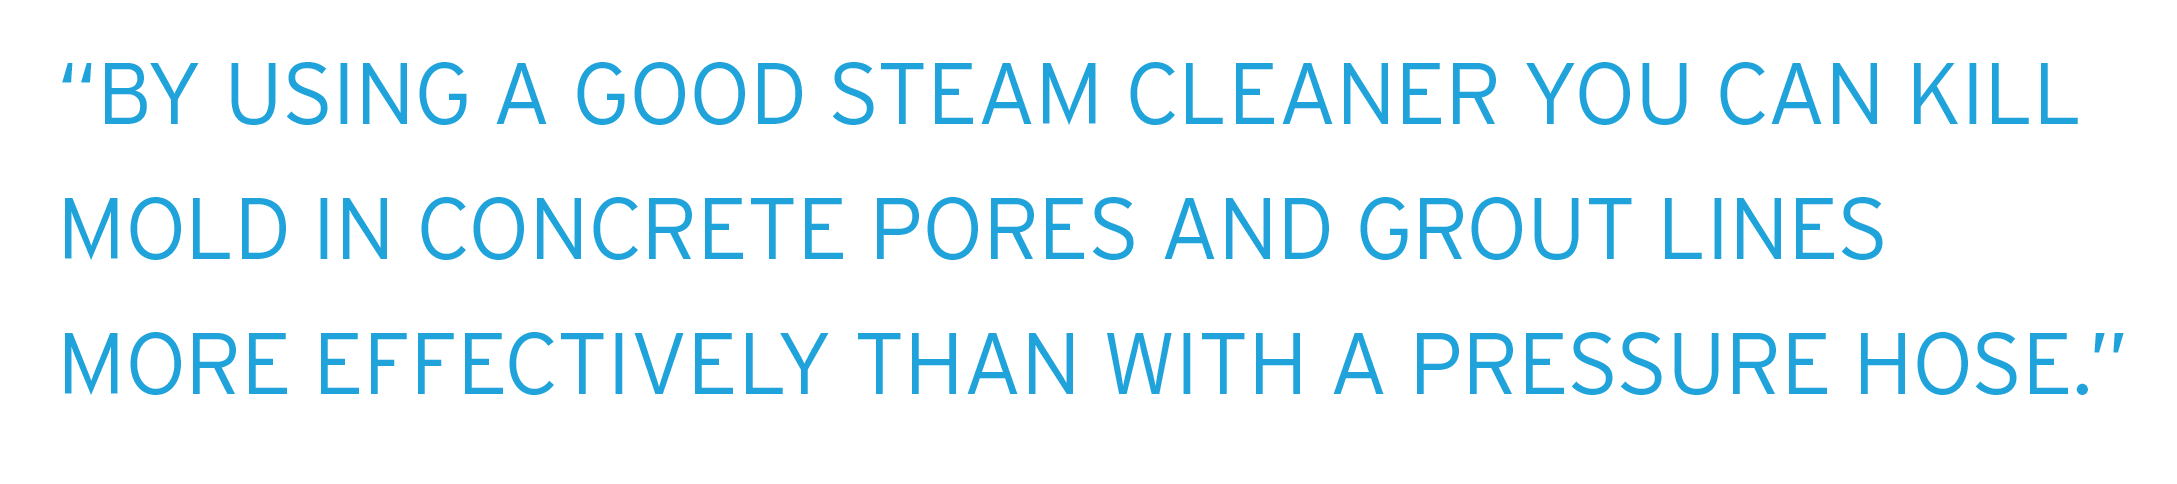 Steam-Cleaning-Pool-Text-1.png